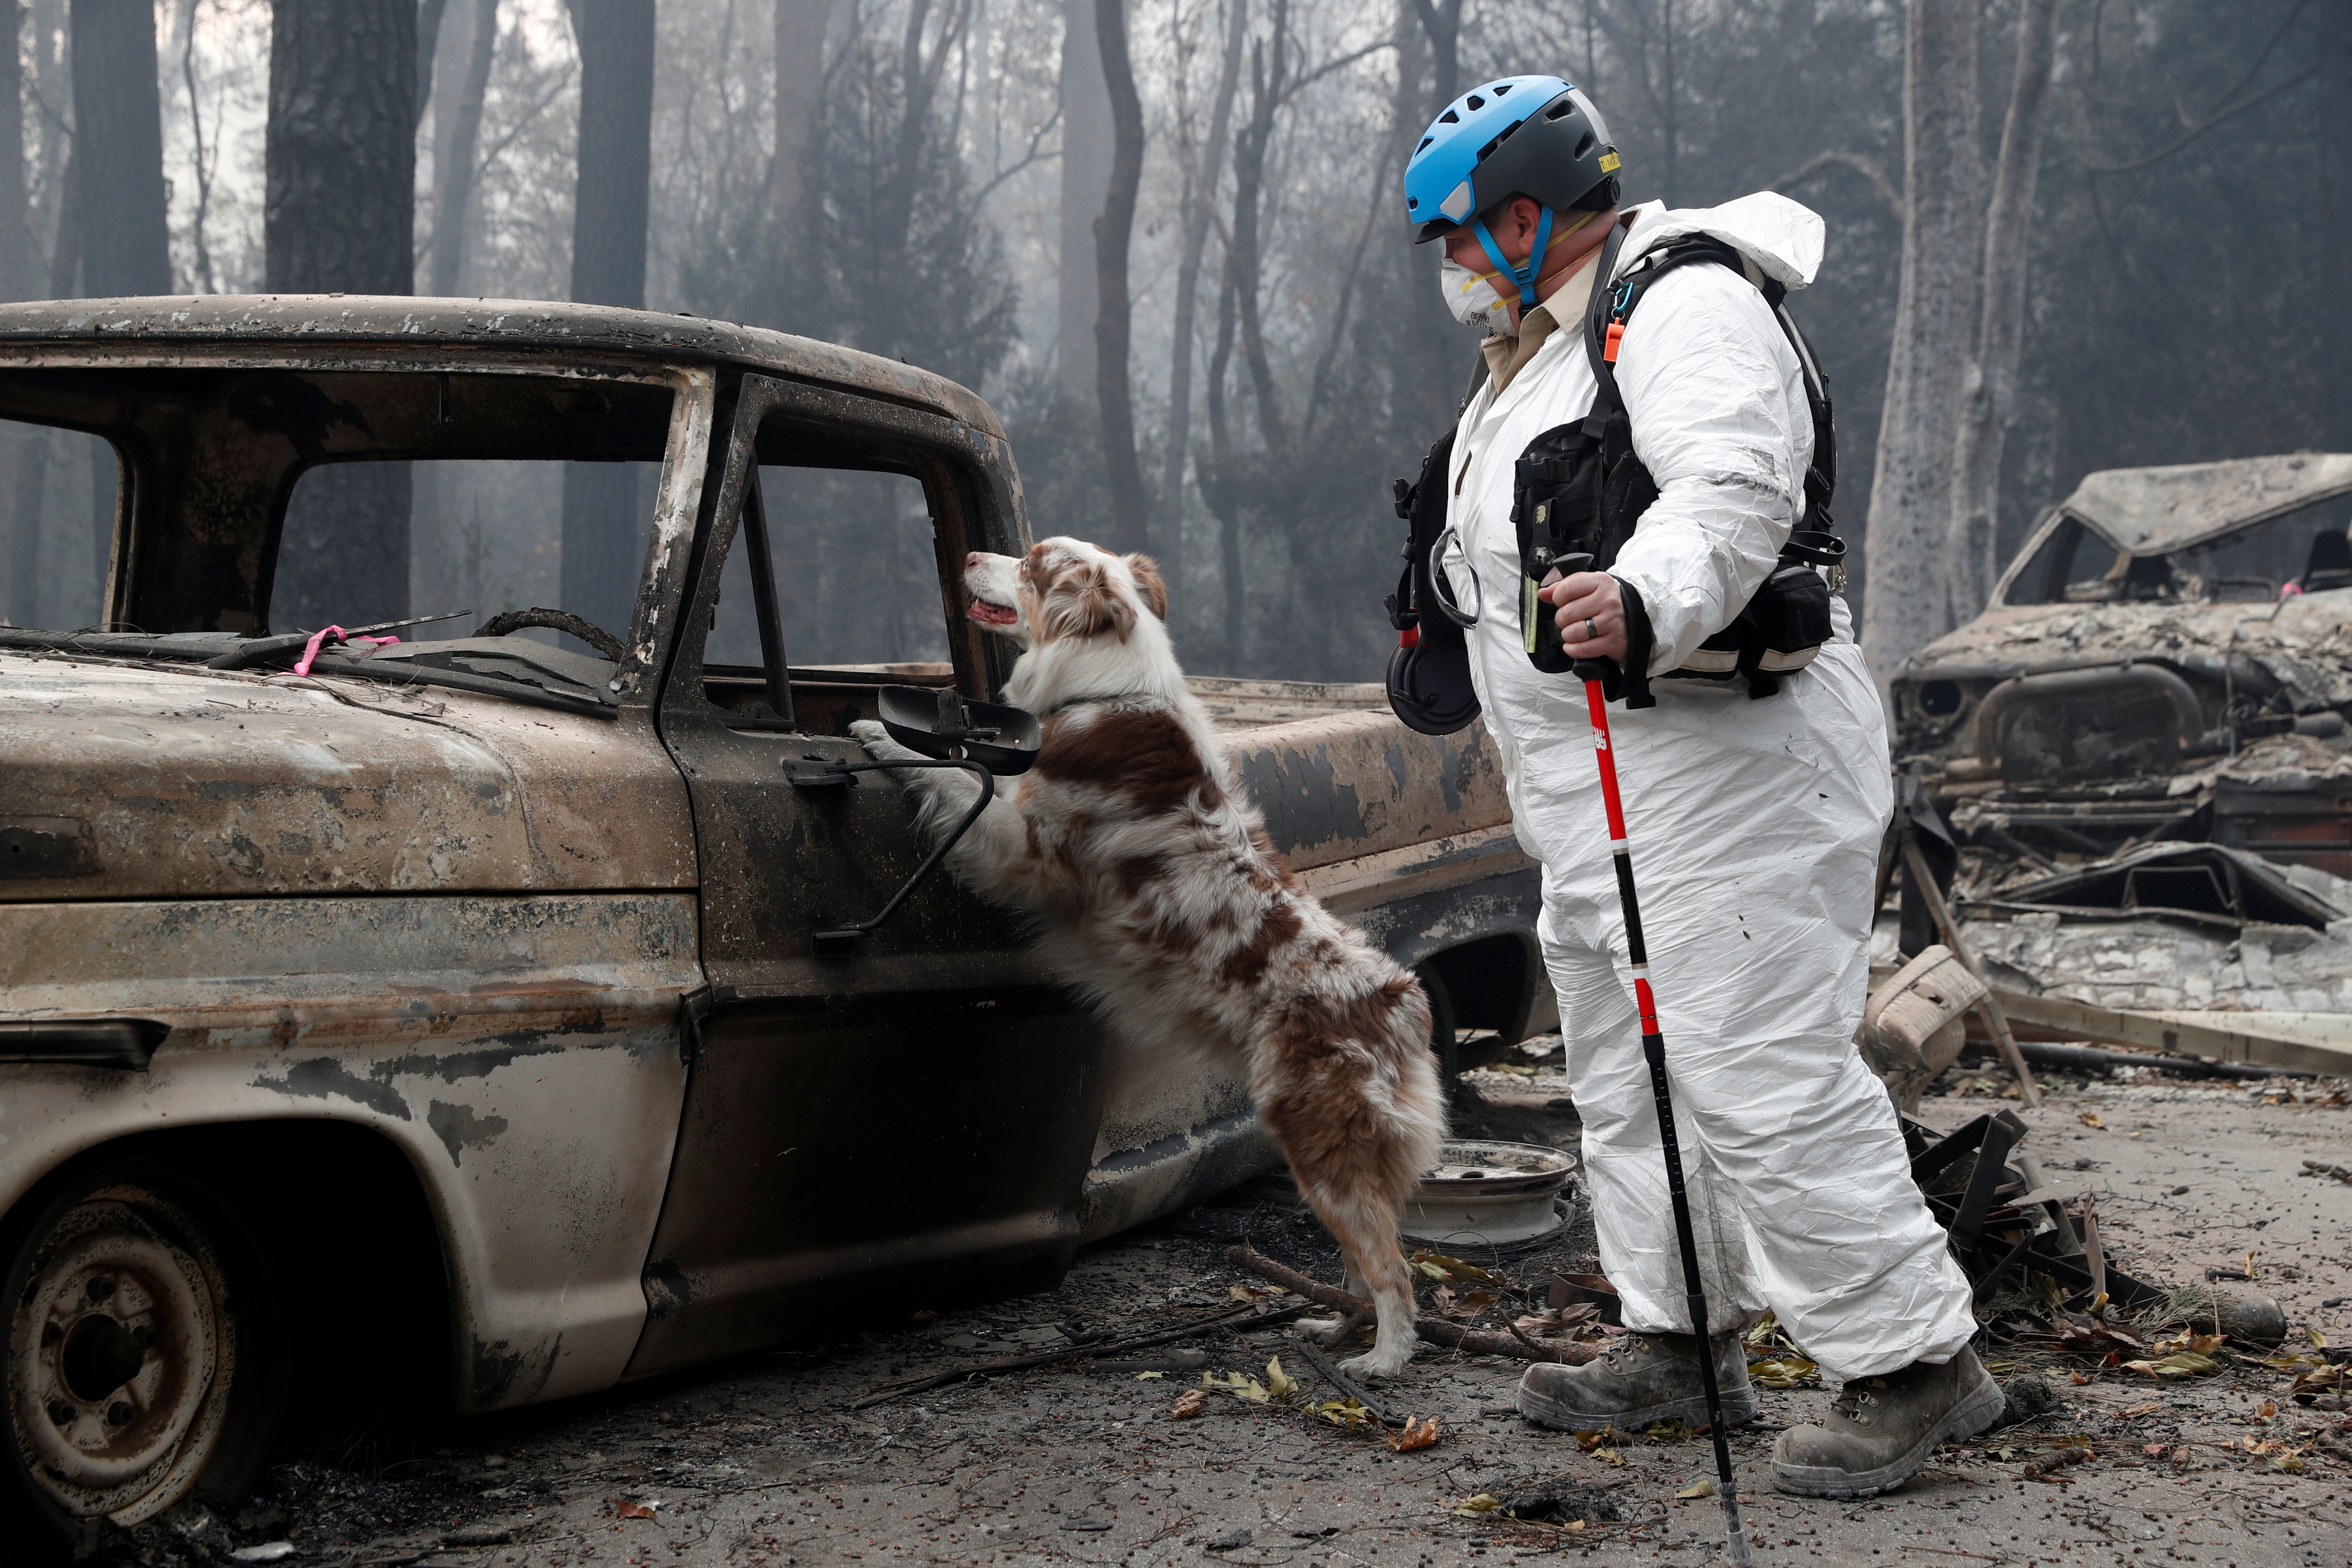 Trish Moutard, of Sacramento, searches for human remains with her cadaver dog, I.C., in a truck destroyed by the Camp Fire in Paradise, California, U.S., November 14, 2018. REUTERS/Terray Sylvester